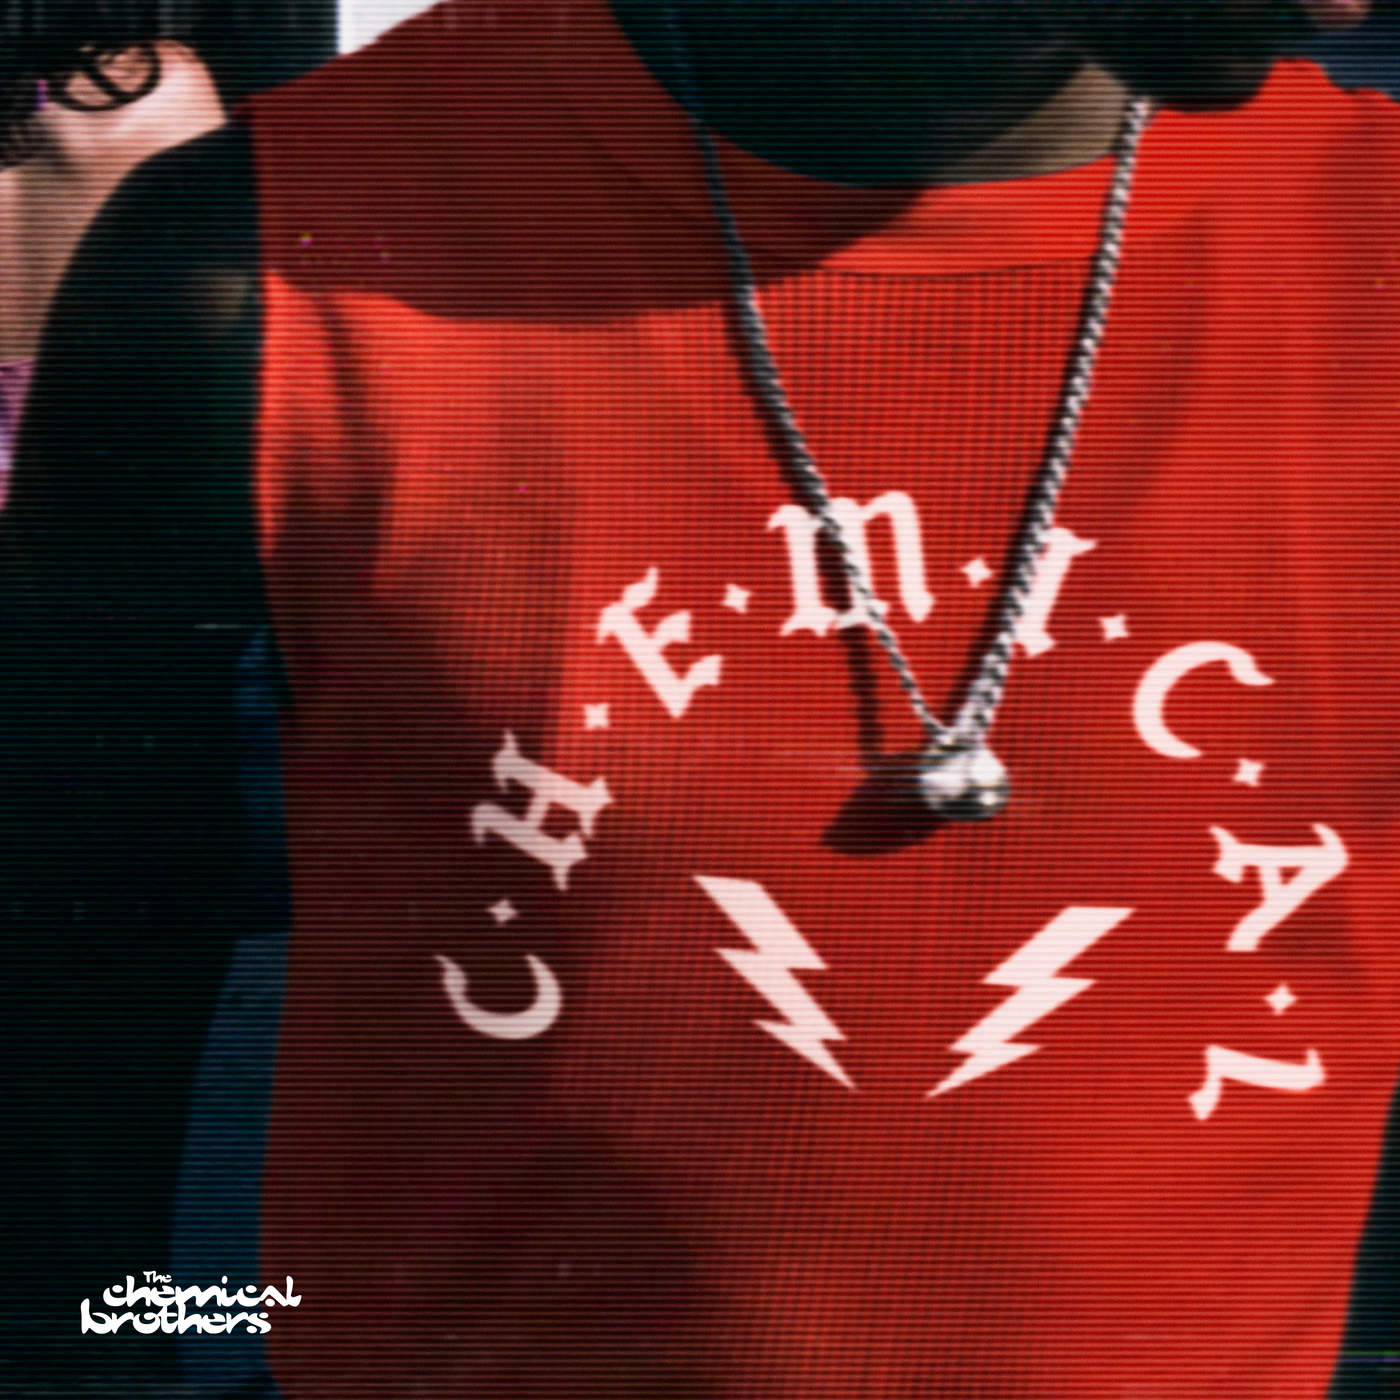 The Chemical Brothers - C-h-e-m-i-c-a-l (Edit) - Single Cover